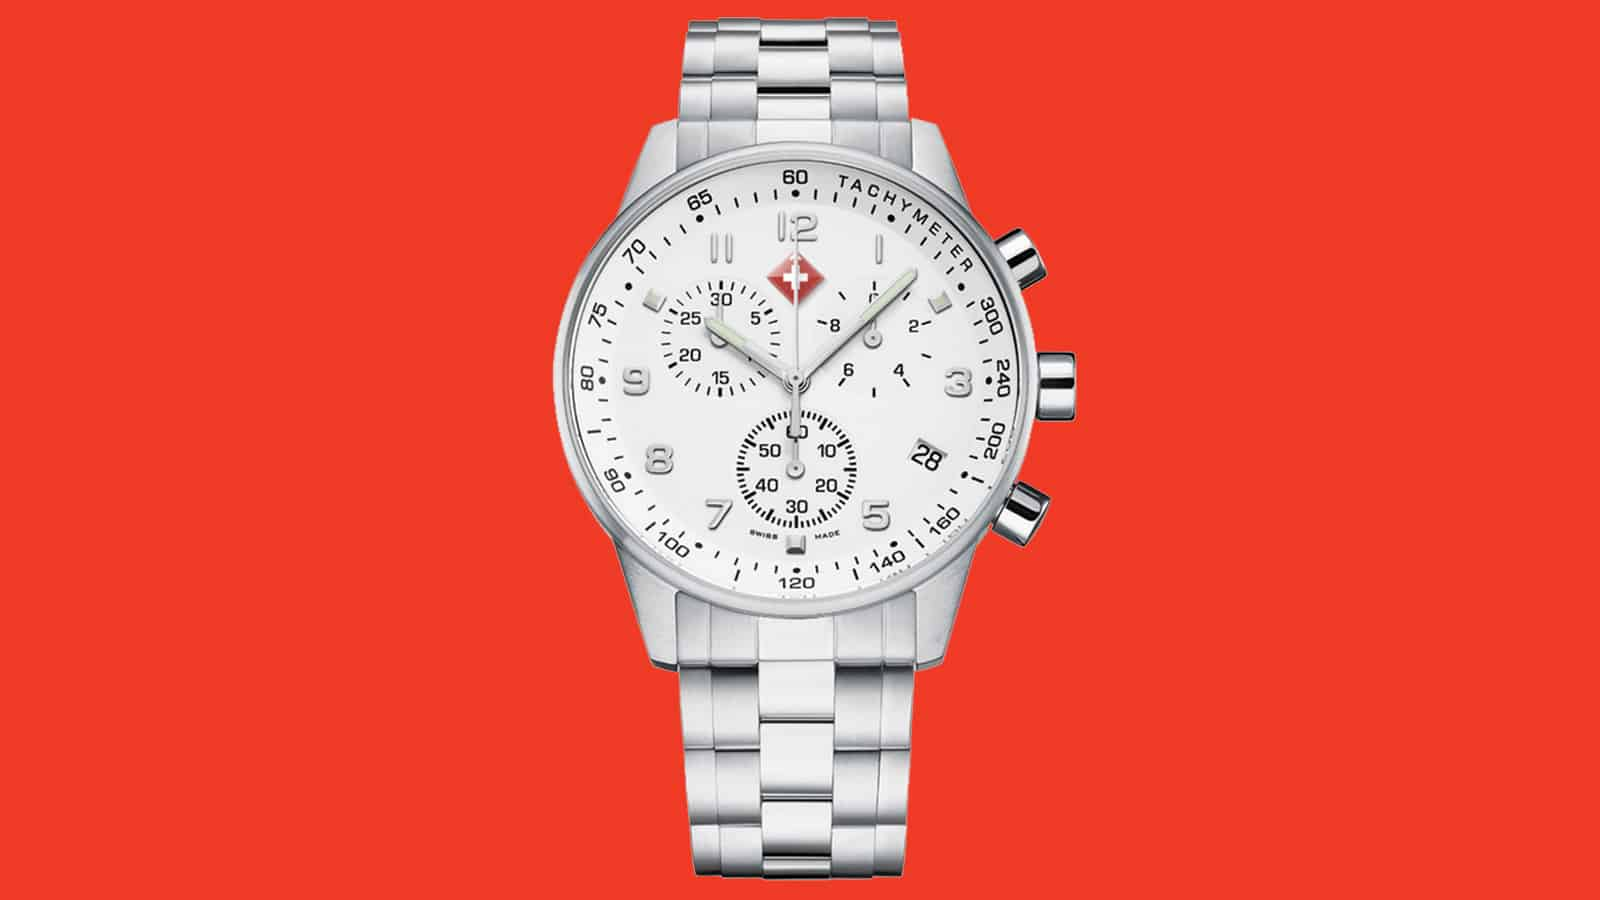 L'HEURE LUXE stainless steele men's watch